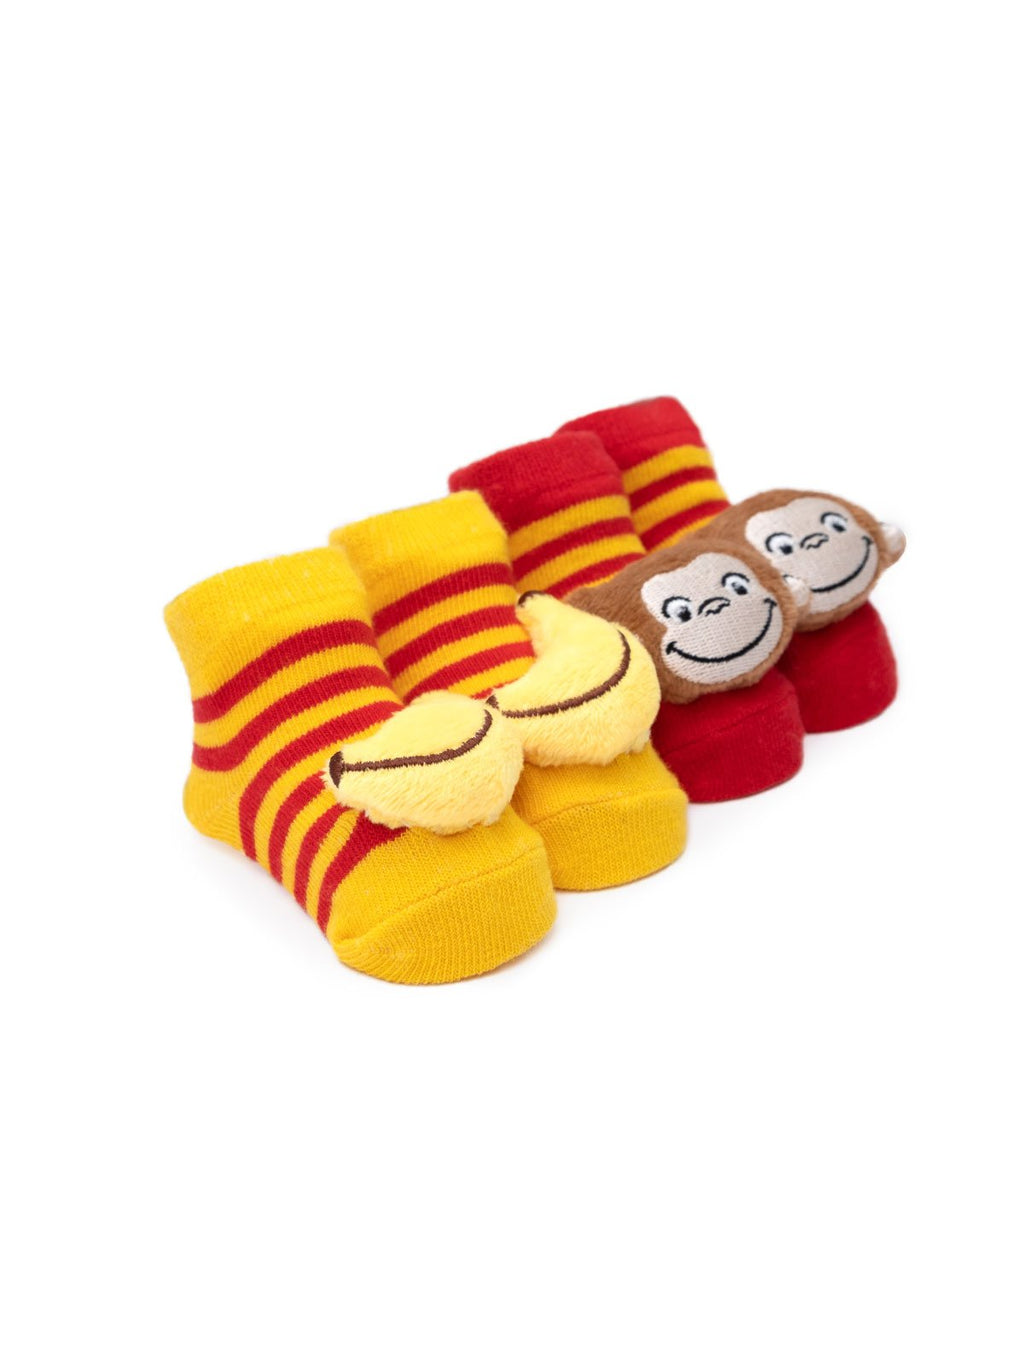 Curious George Baby Socks (2-pack)